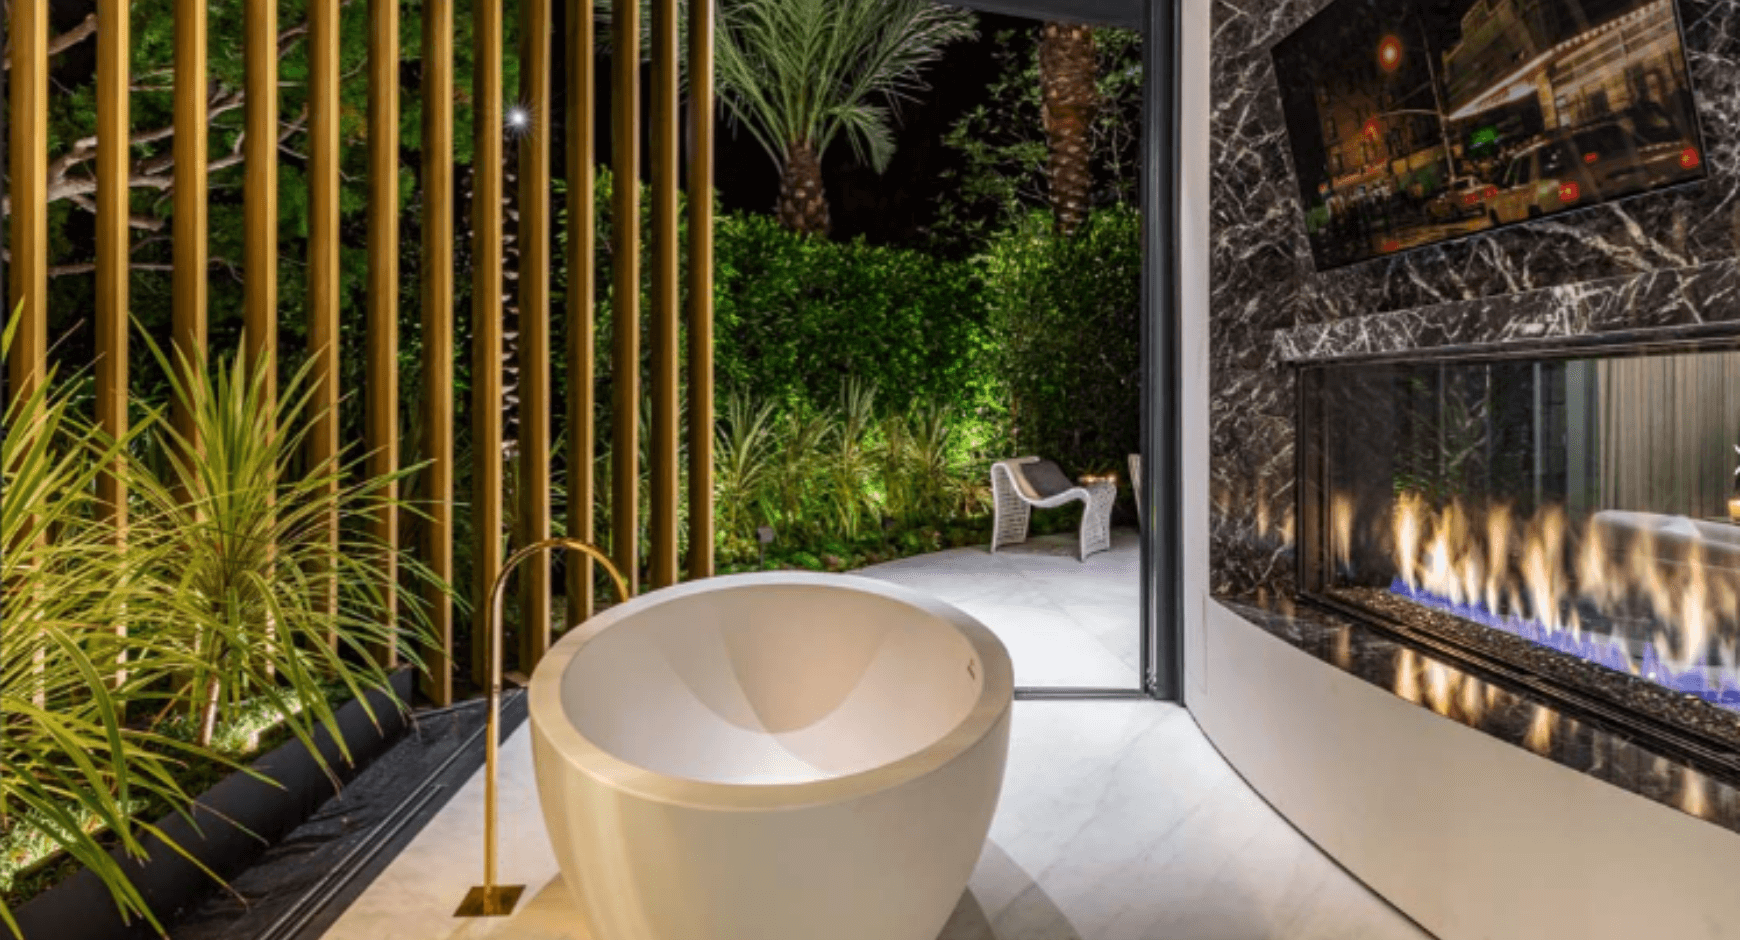 bathroom-related new trends in the hotel industry